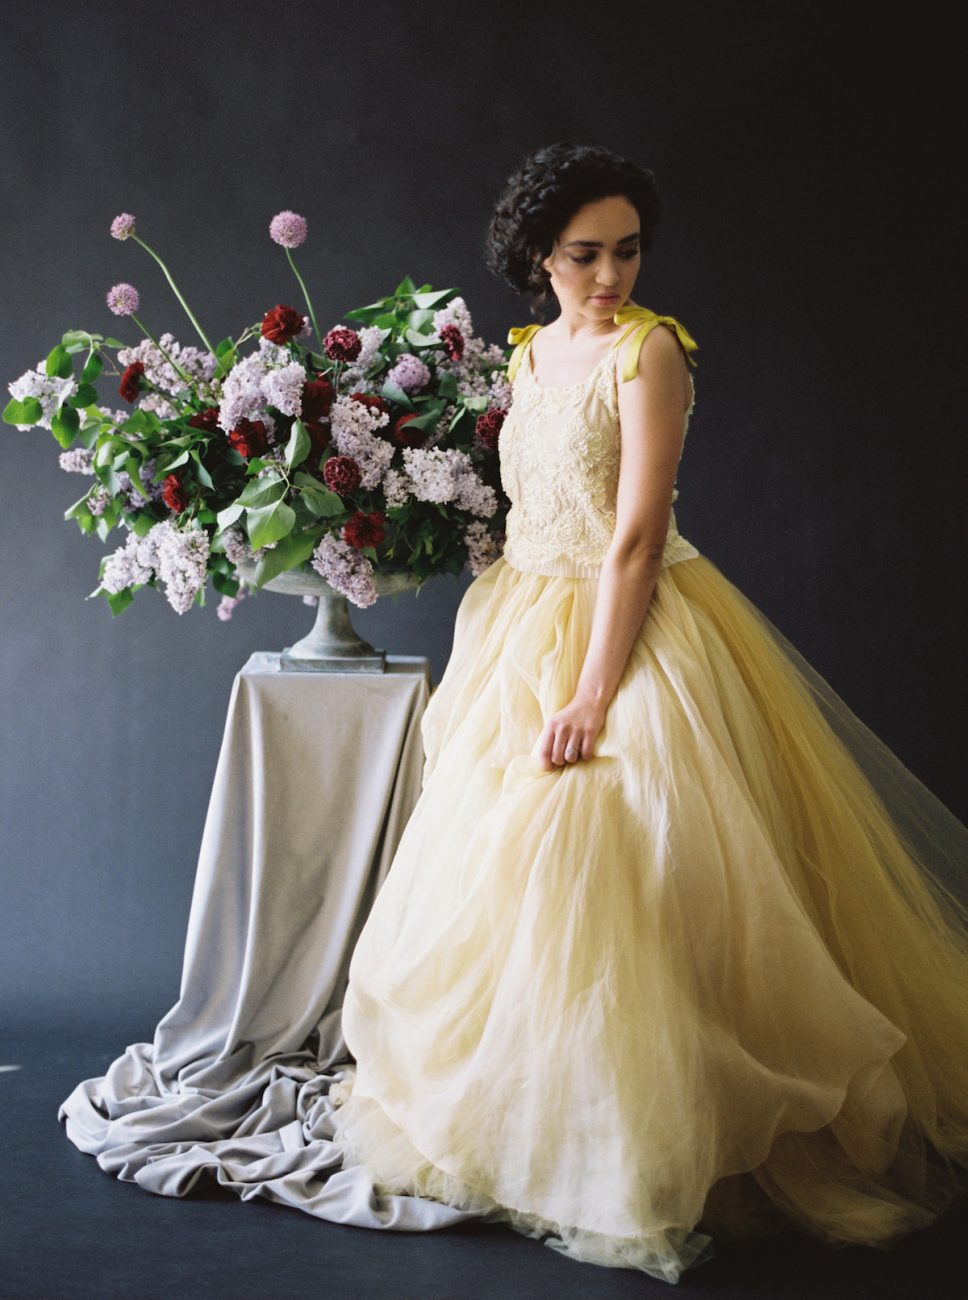 Moody Black Wedding Inspiration_large urn with flowers next to bride in yellow dress